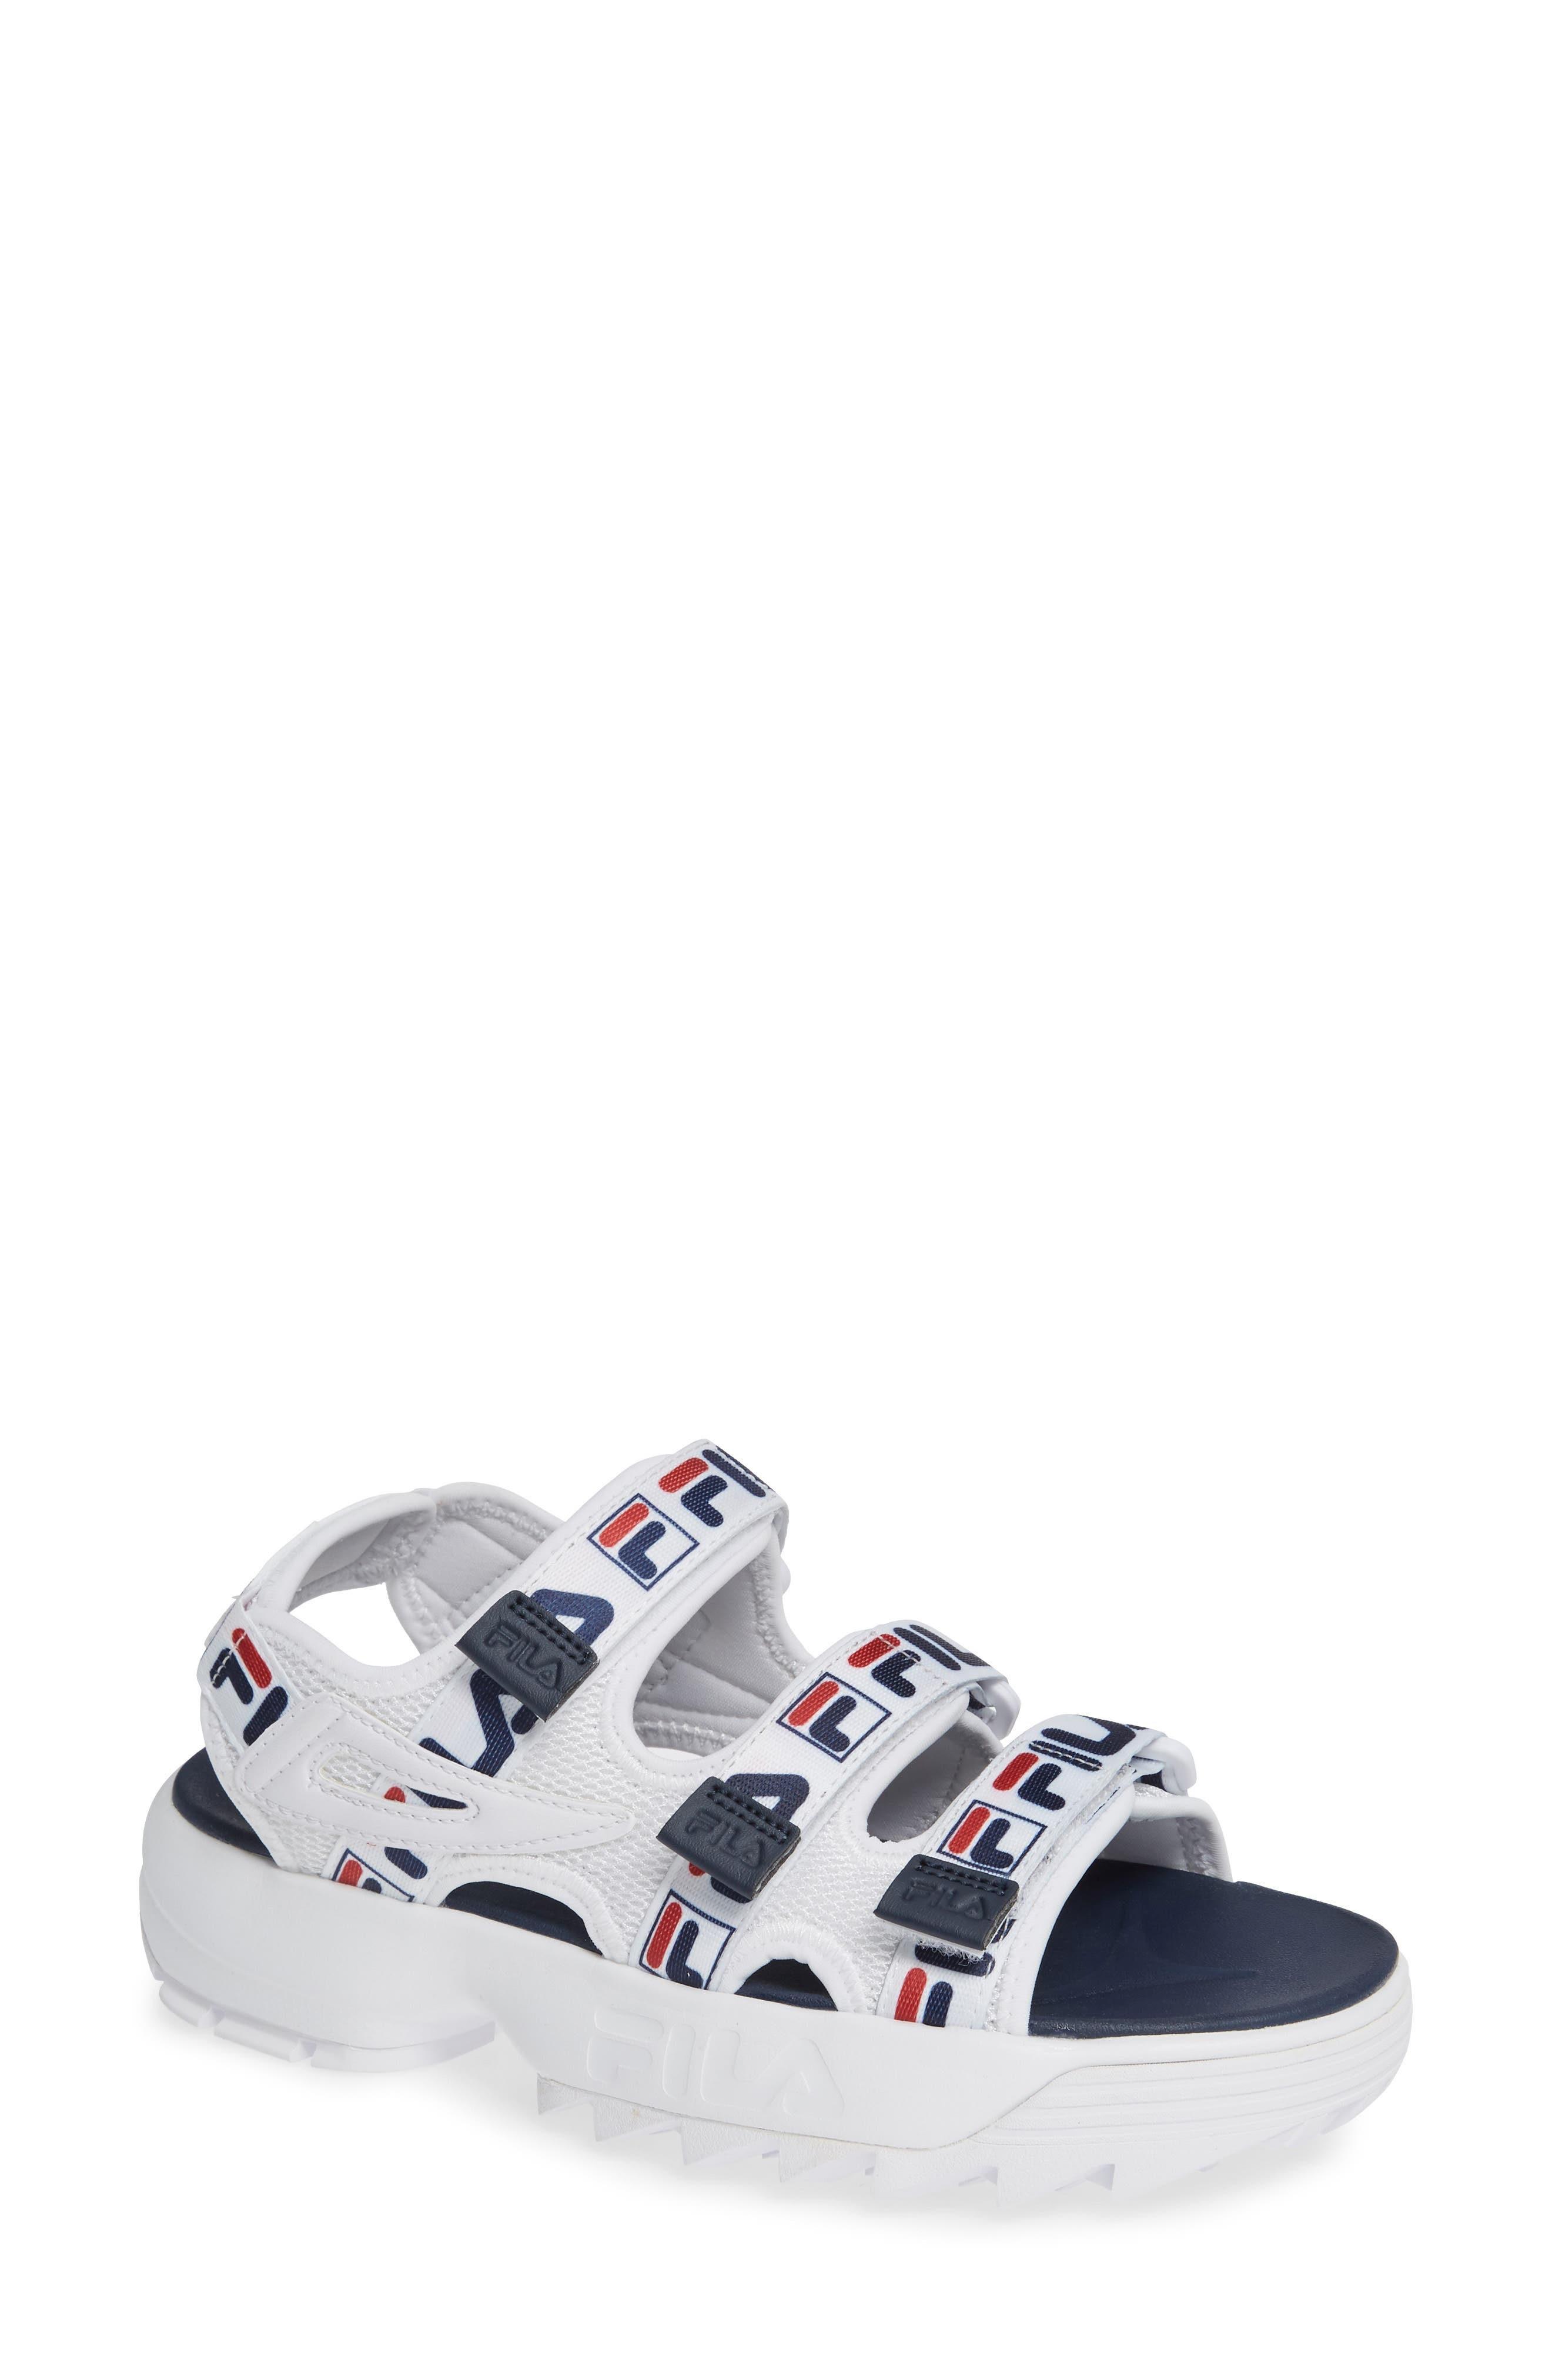 Disruptor Sandal,                             Main thumbnail 1, color,                             WHITE/ FILA NAVY